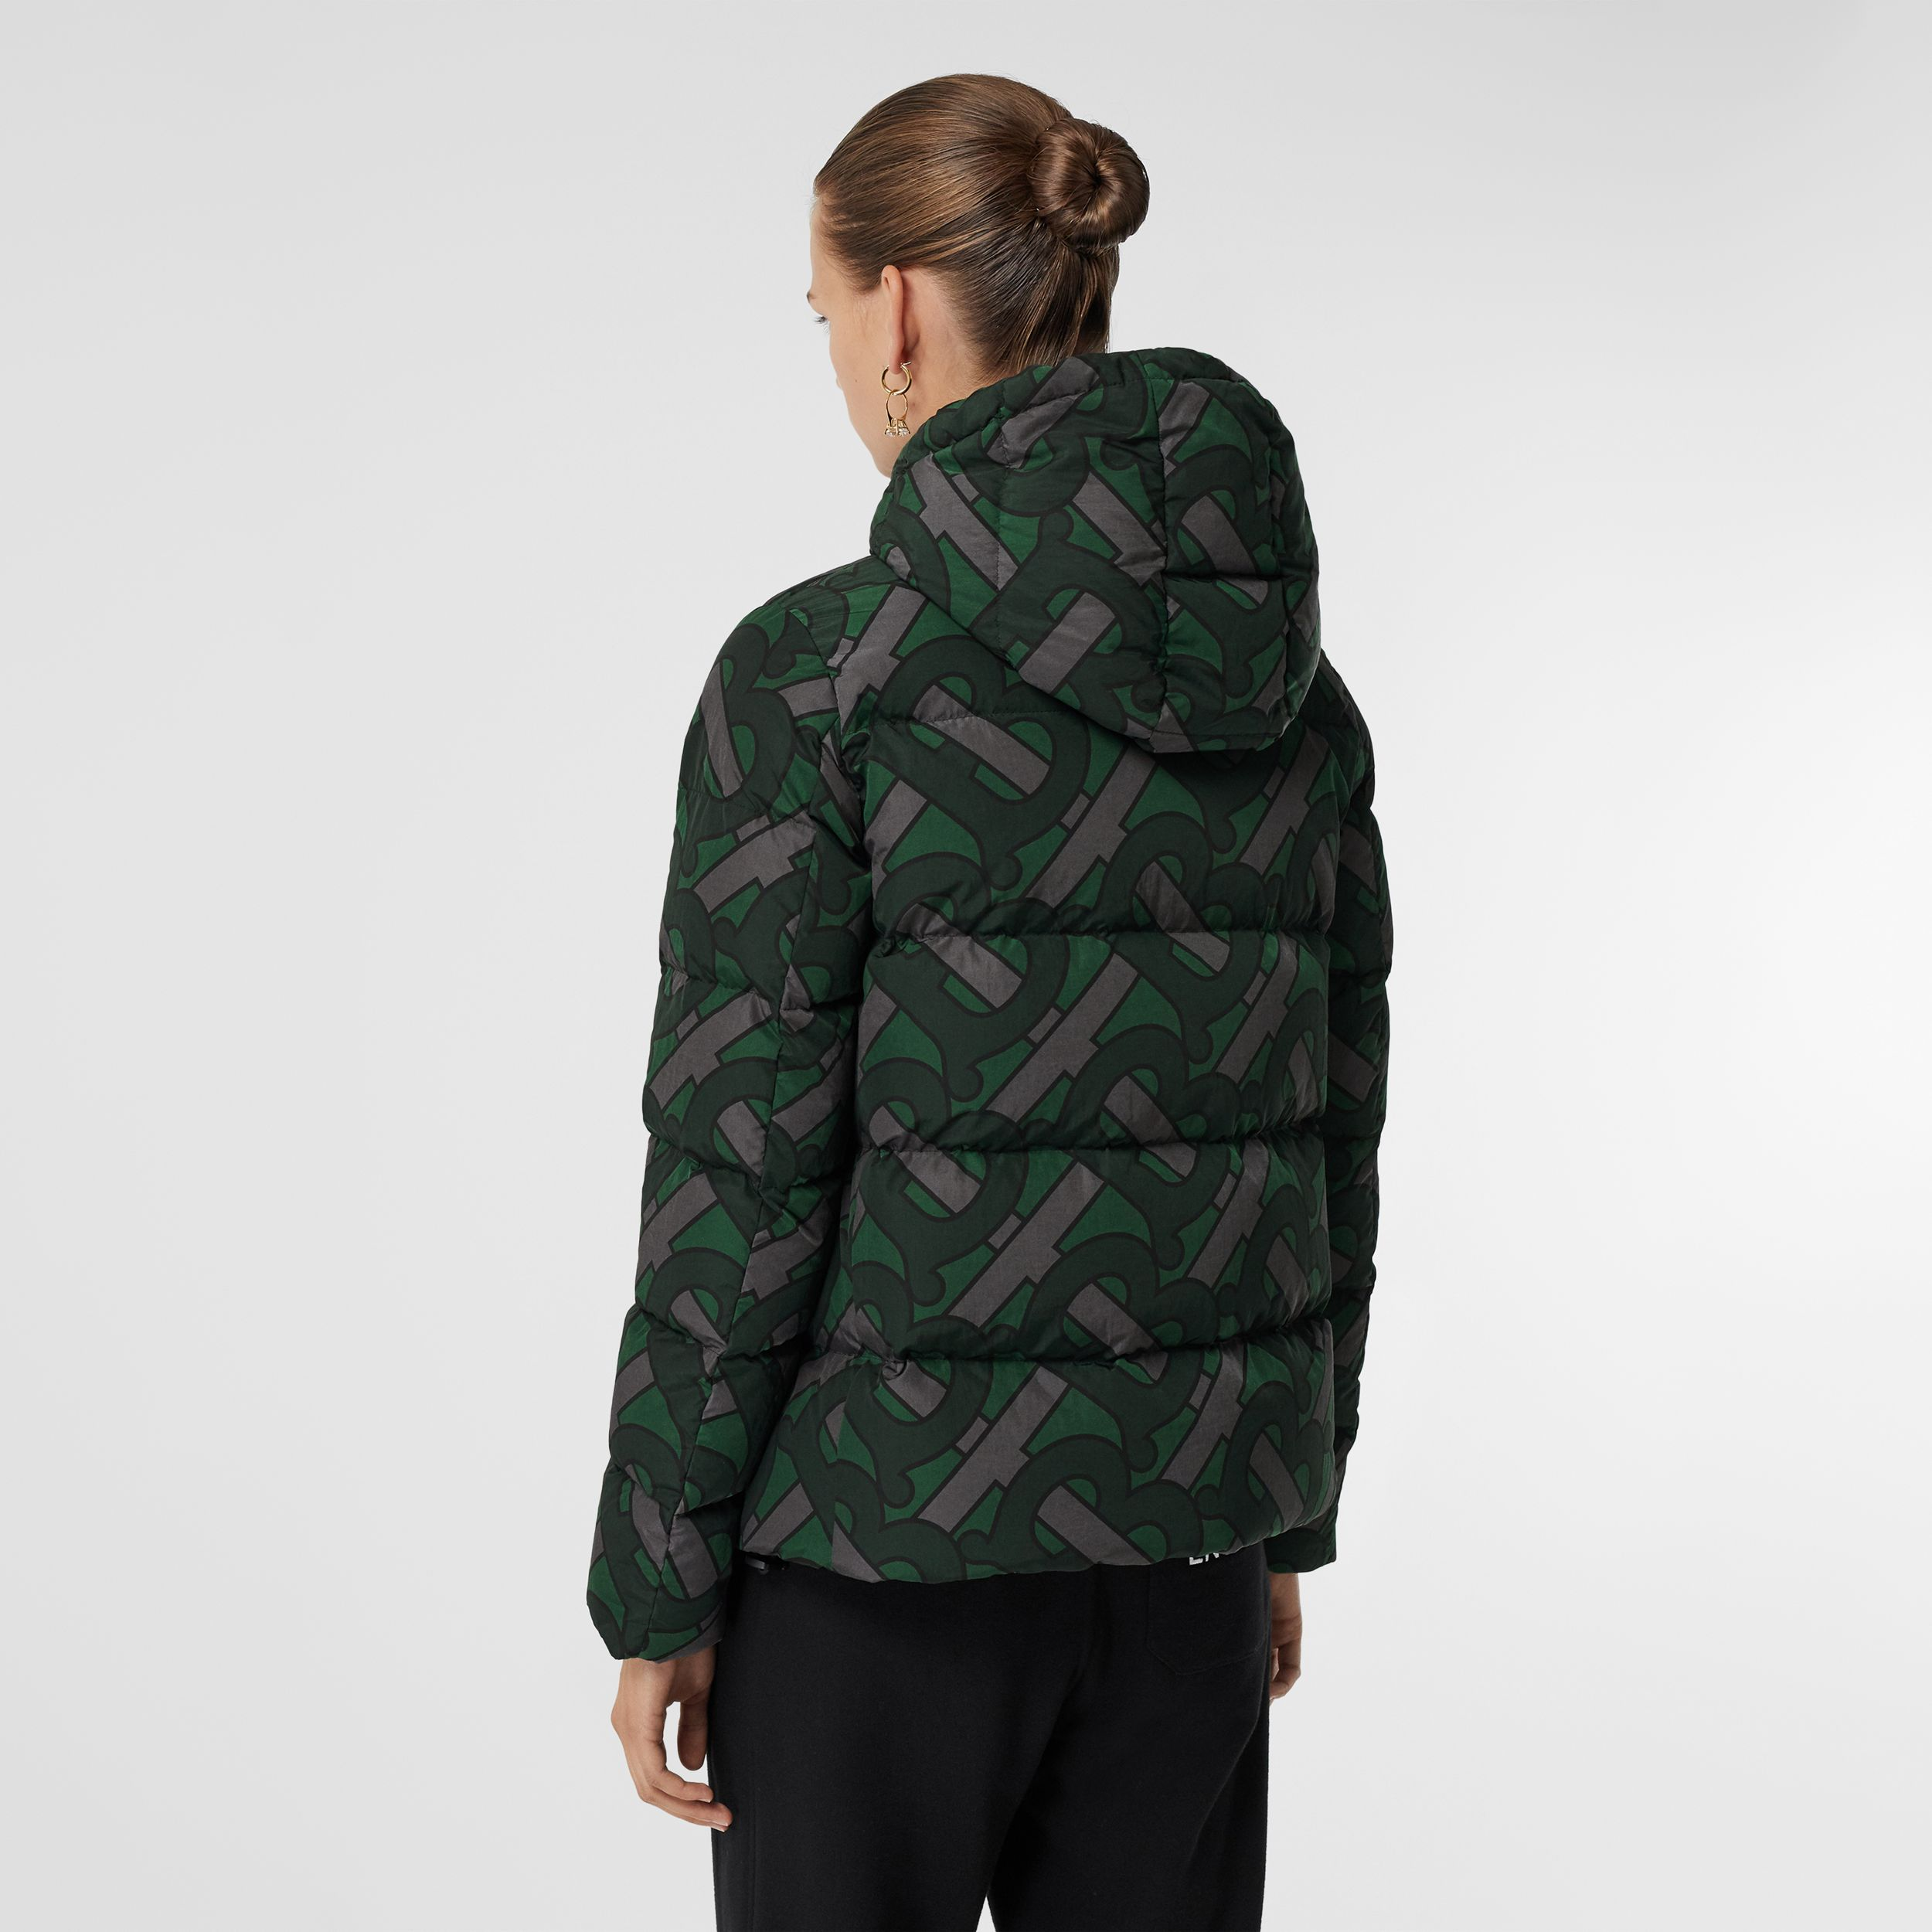 Monogram Print Hooded Puffer Jacket in Forest Green - Women | Burberry - 3